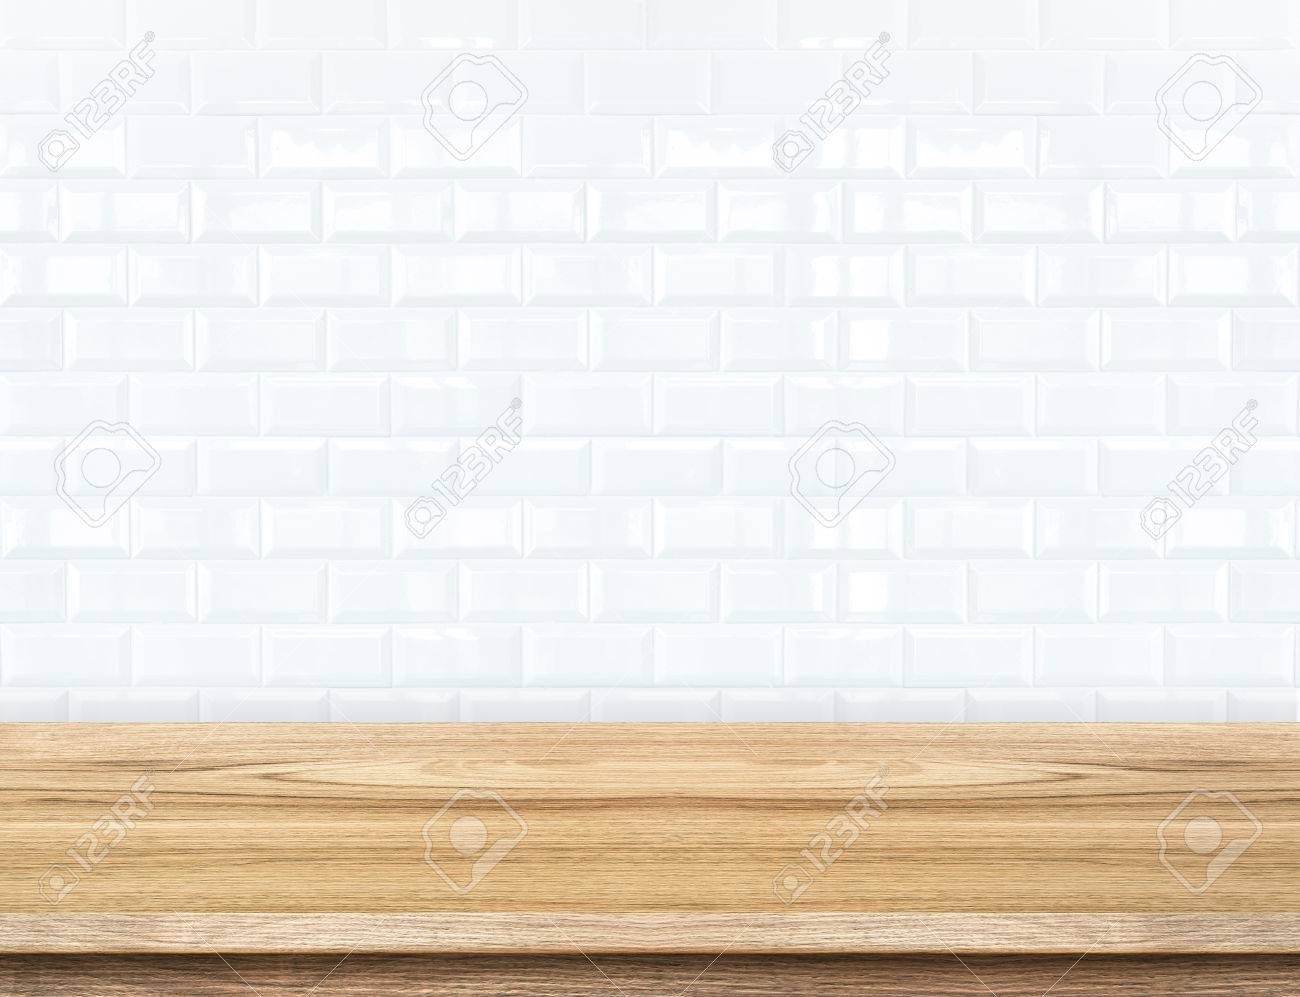 Ceramic tile shine products choice image tile flooring design ideas empty wood table and ceramic tile brick wall in background empty wood table and ceramic tile dailygadgetfo Gallery